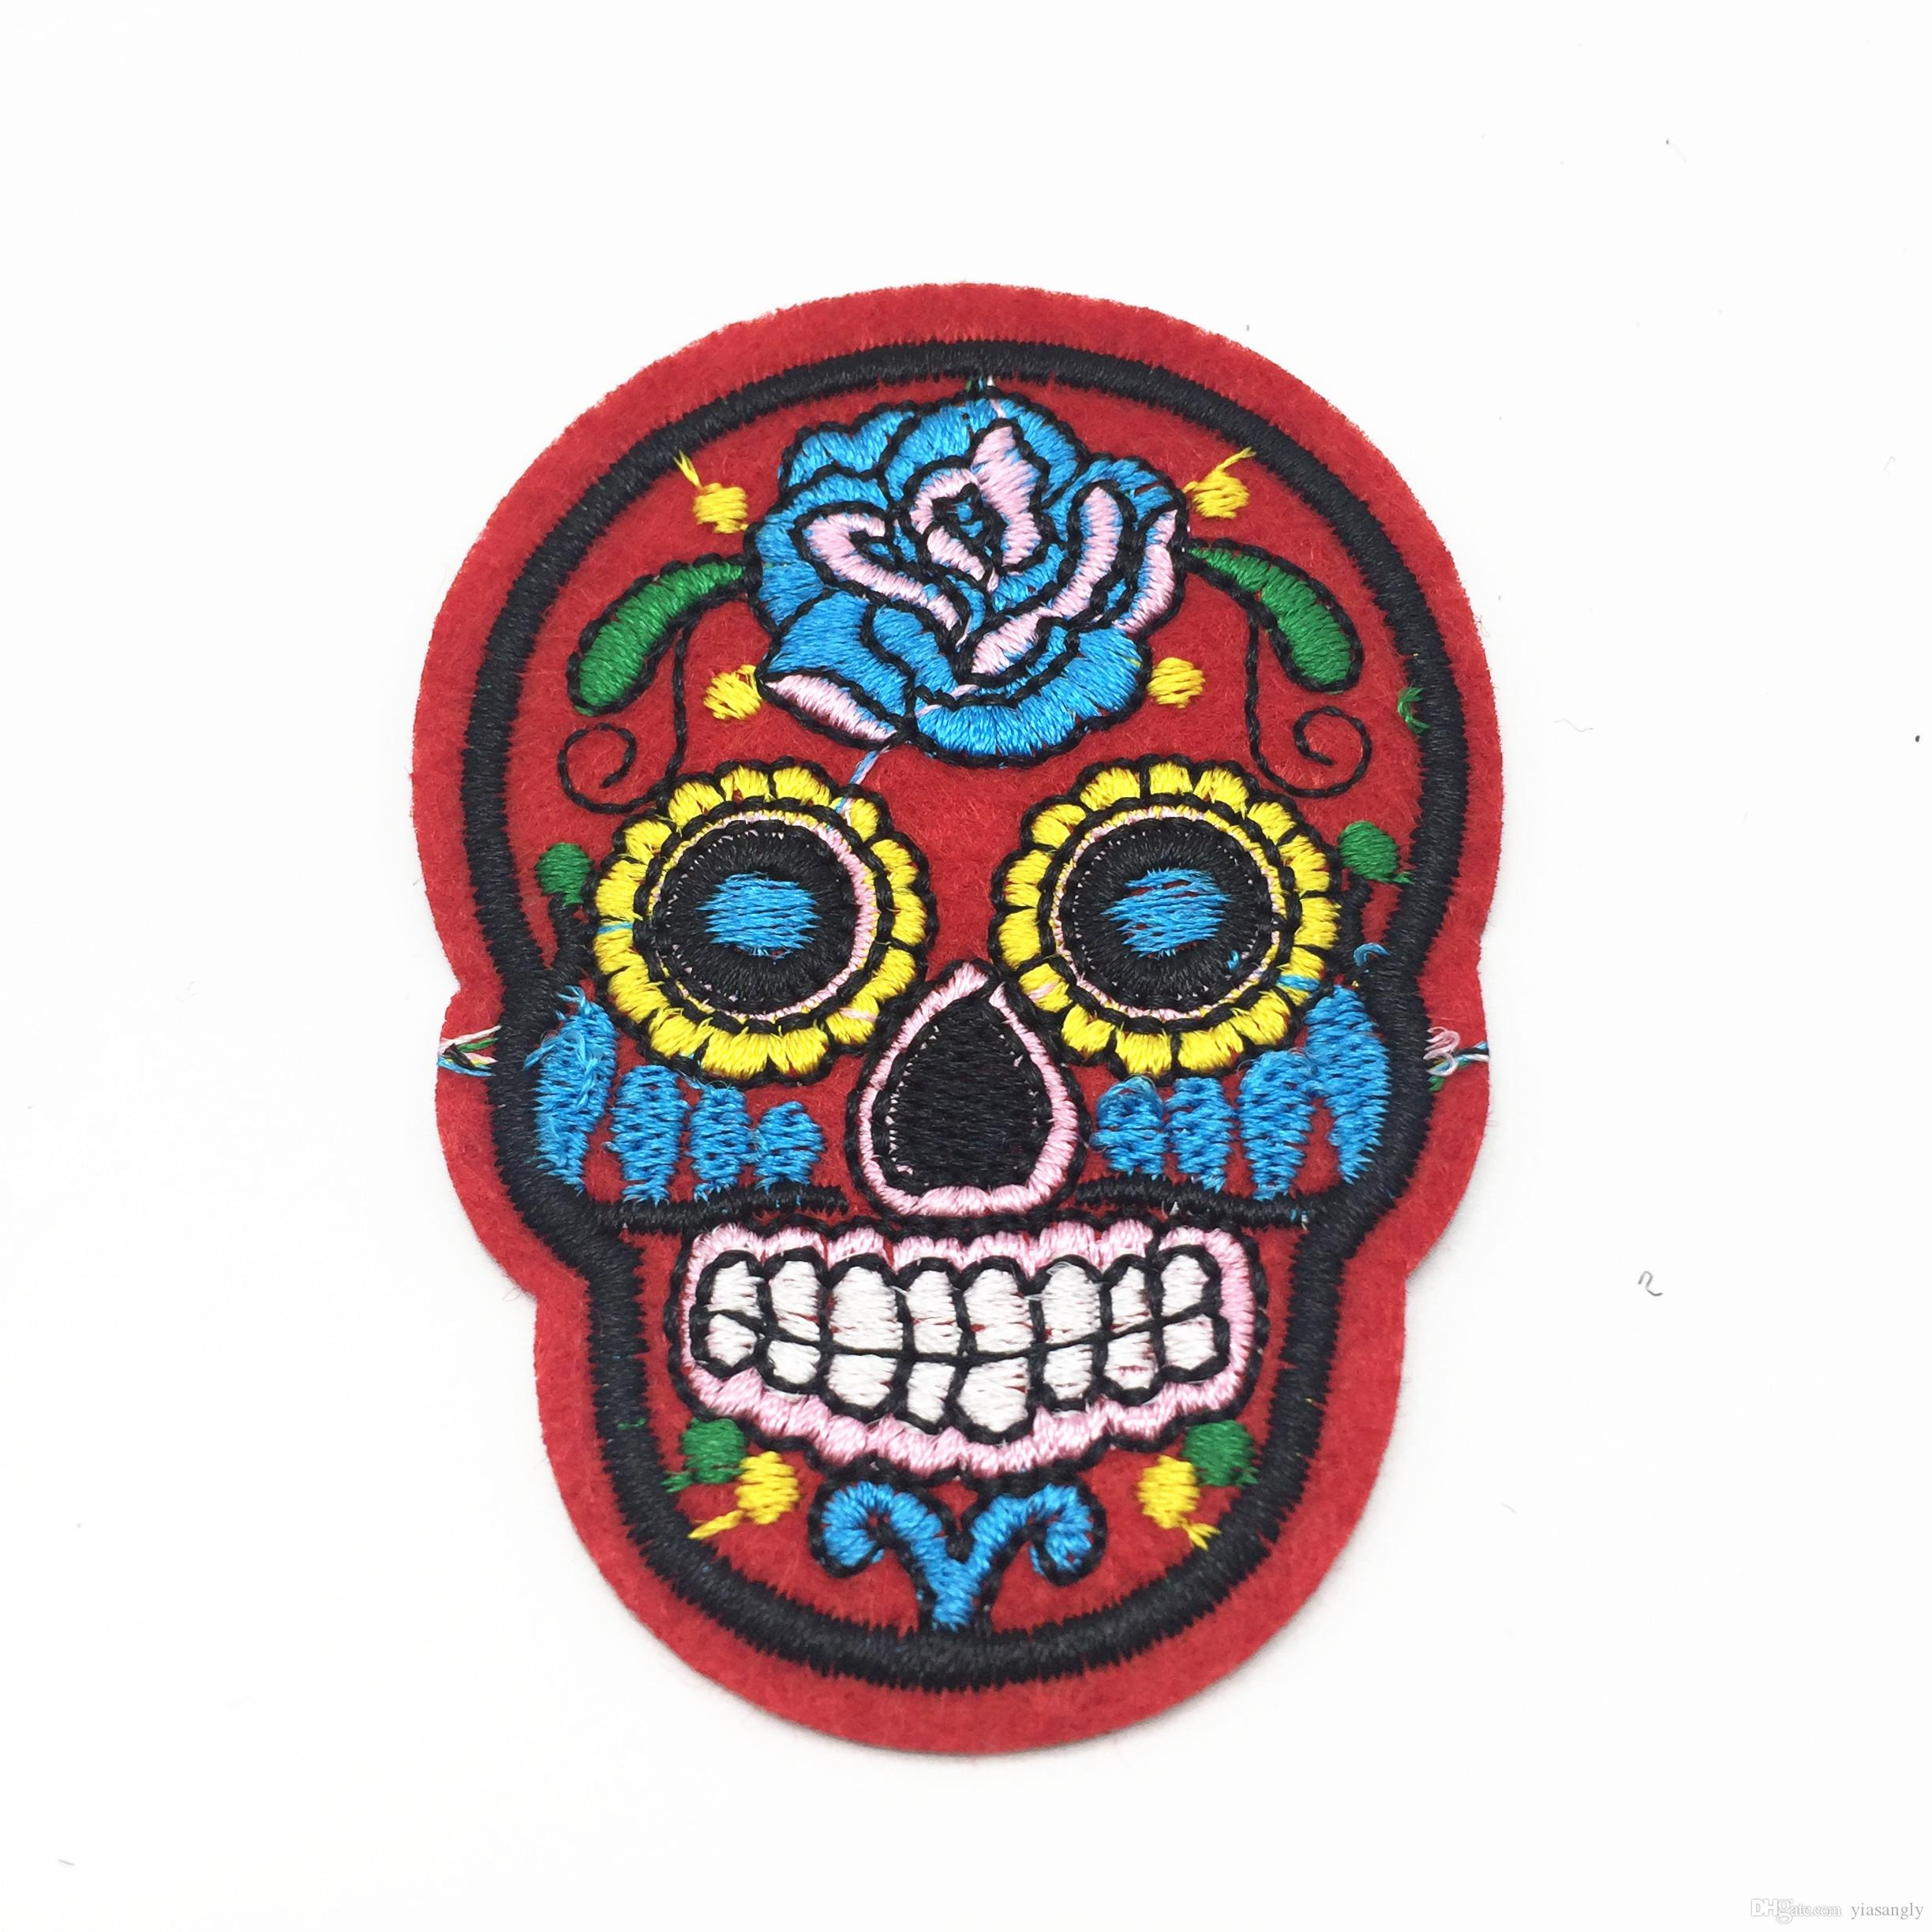 20pcs Red Skull Patch DIY Skeleton Embroidered Patches Iron On Fabric Badges Sewing On Cloth Stickers